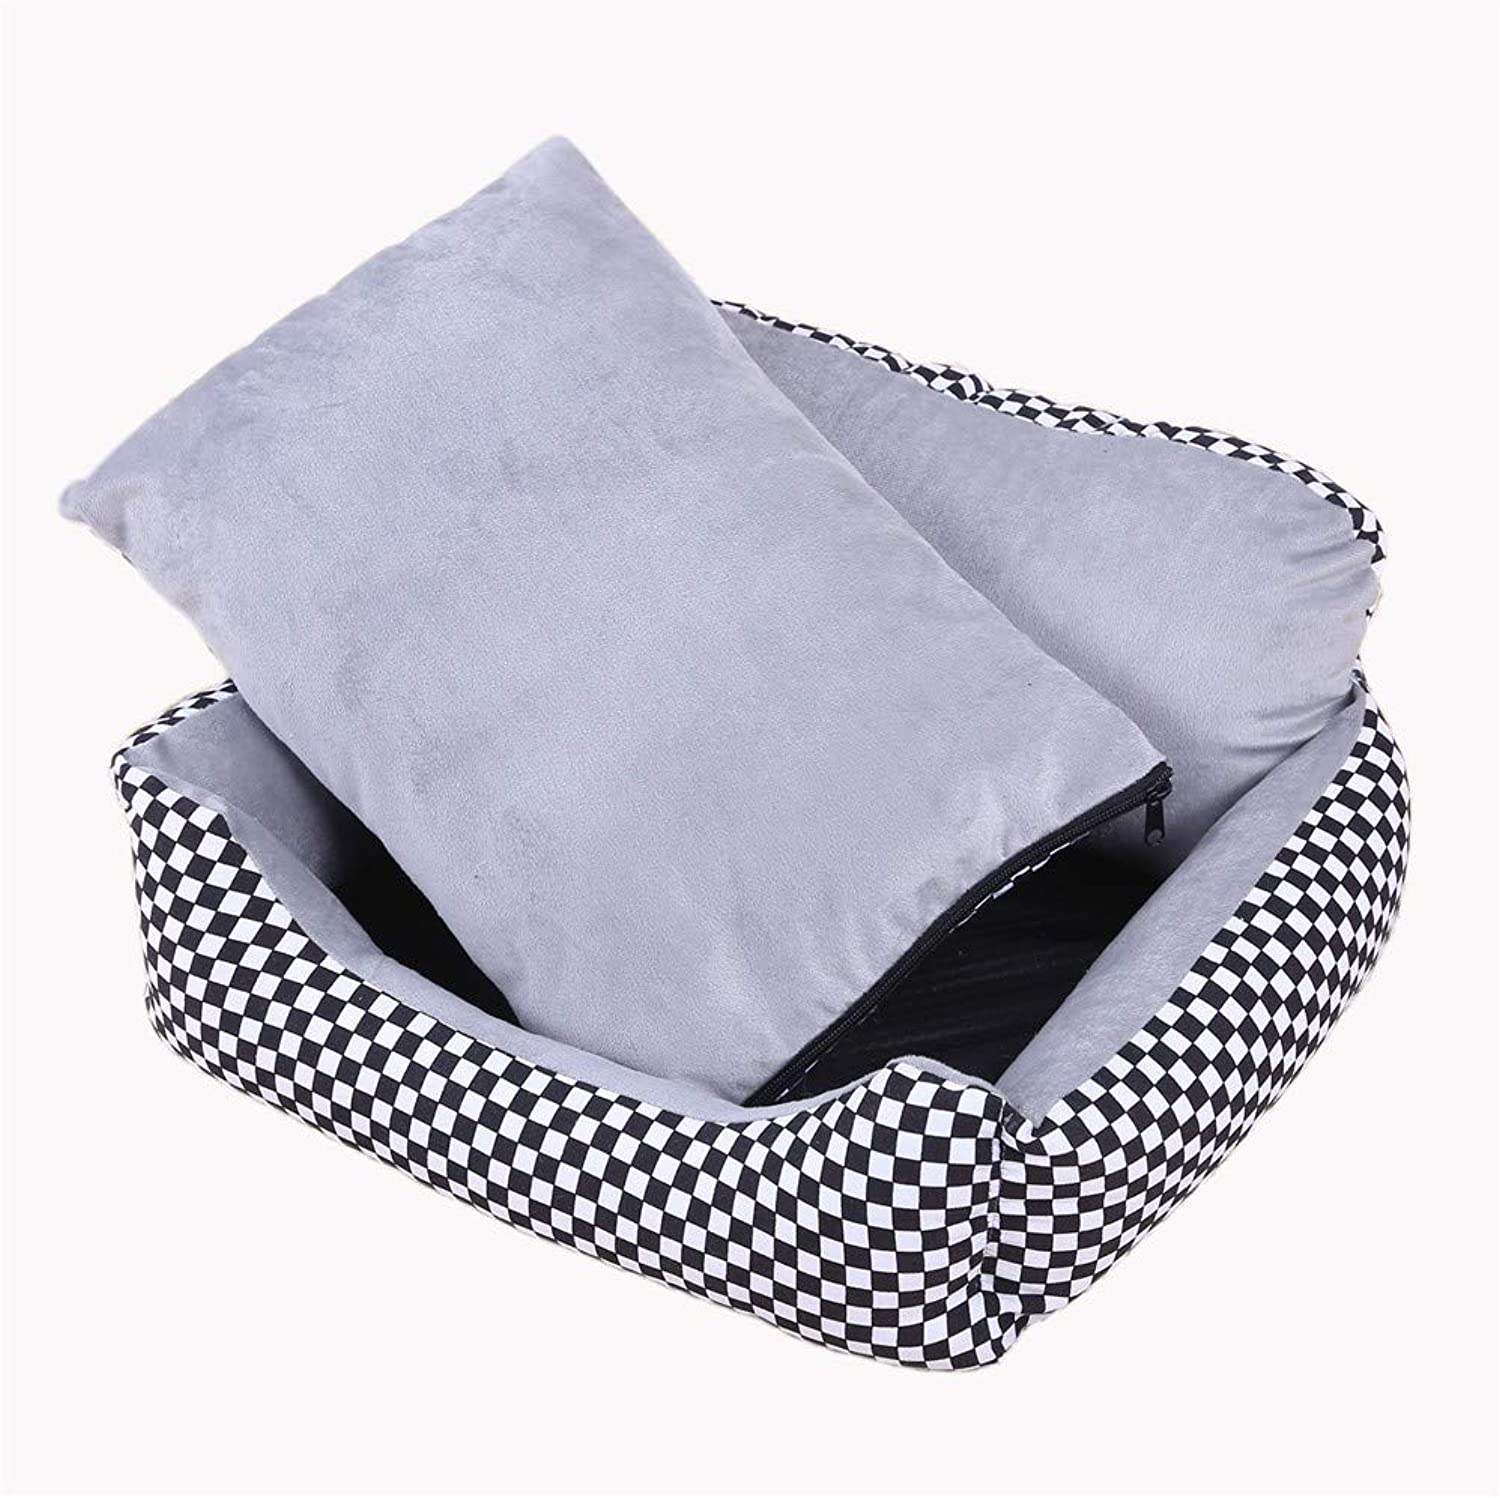 Pet Dog BedBest Friends Portable Kennel Indoor Outdoor Sofa Bed Four Seasons Universal Removable and Washable Pets, M+ Blanket + Bones, Black and White